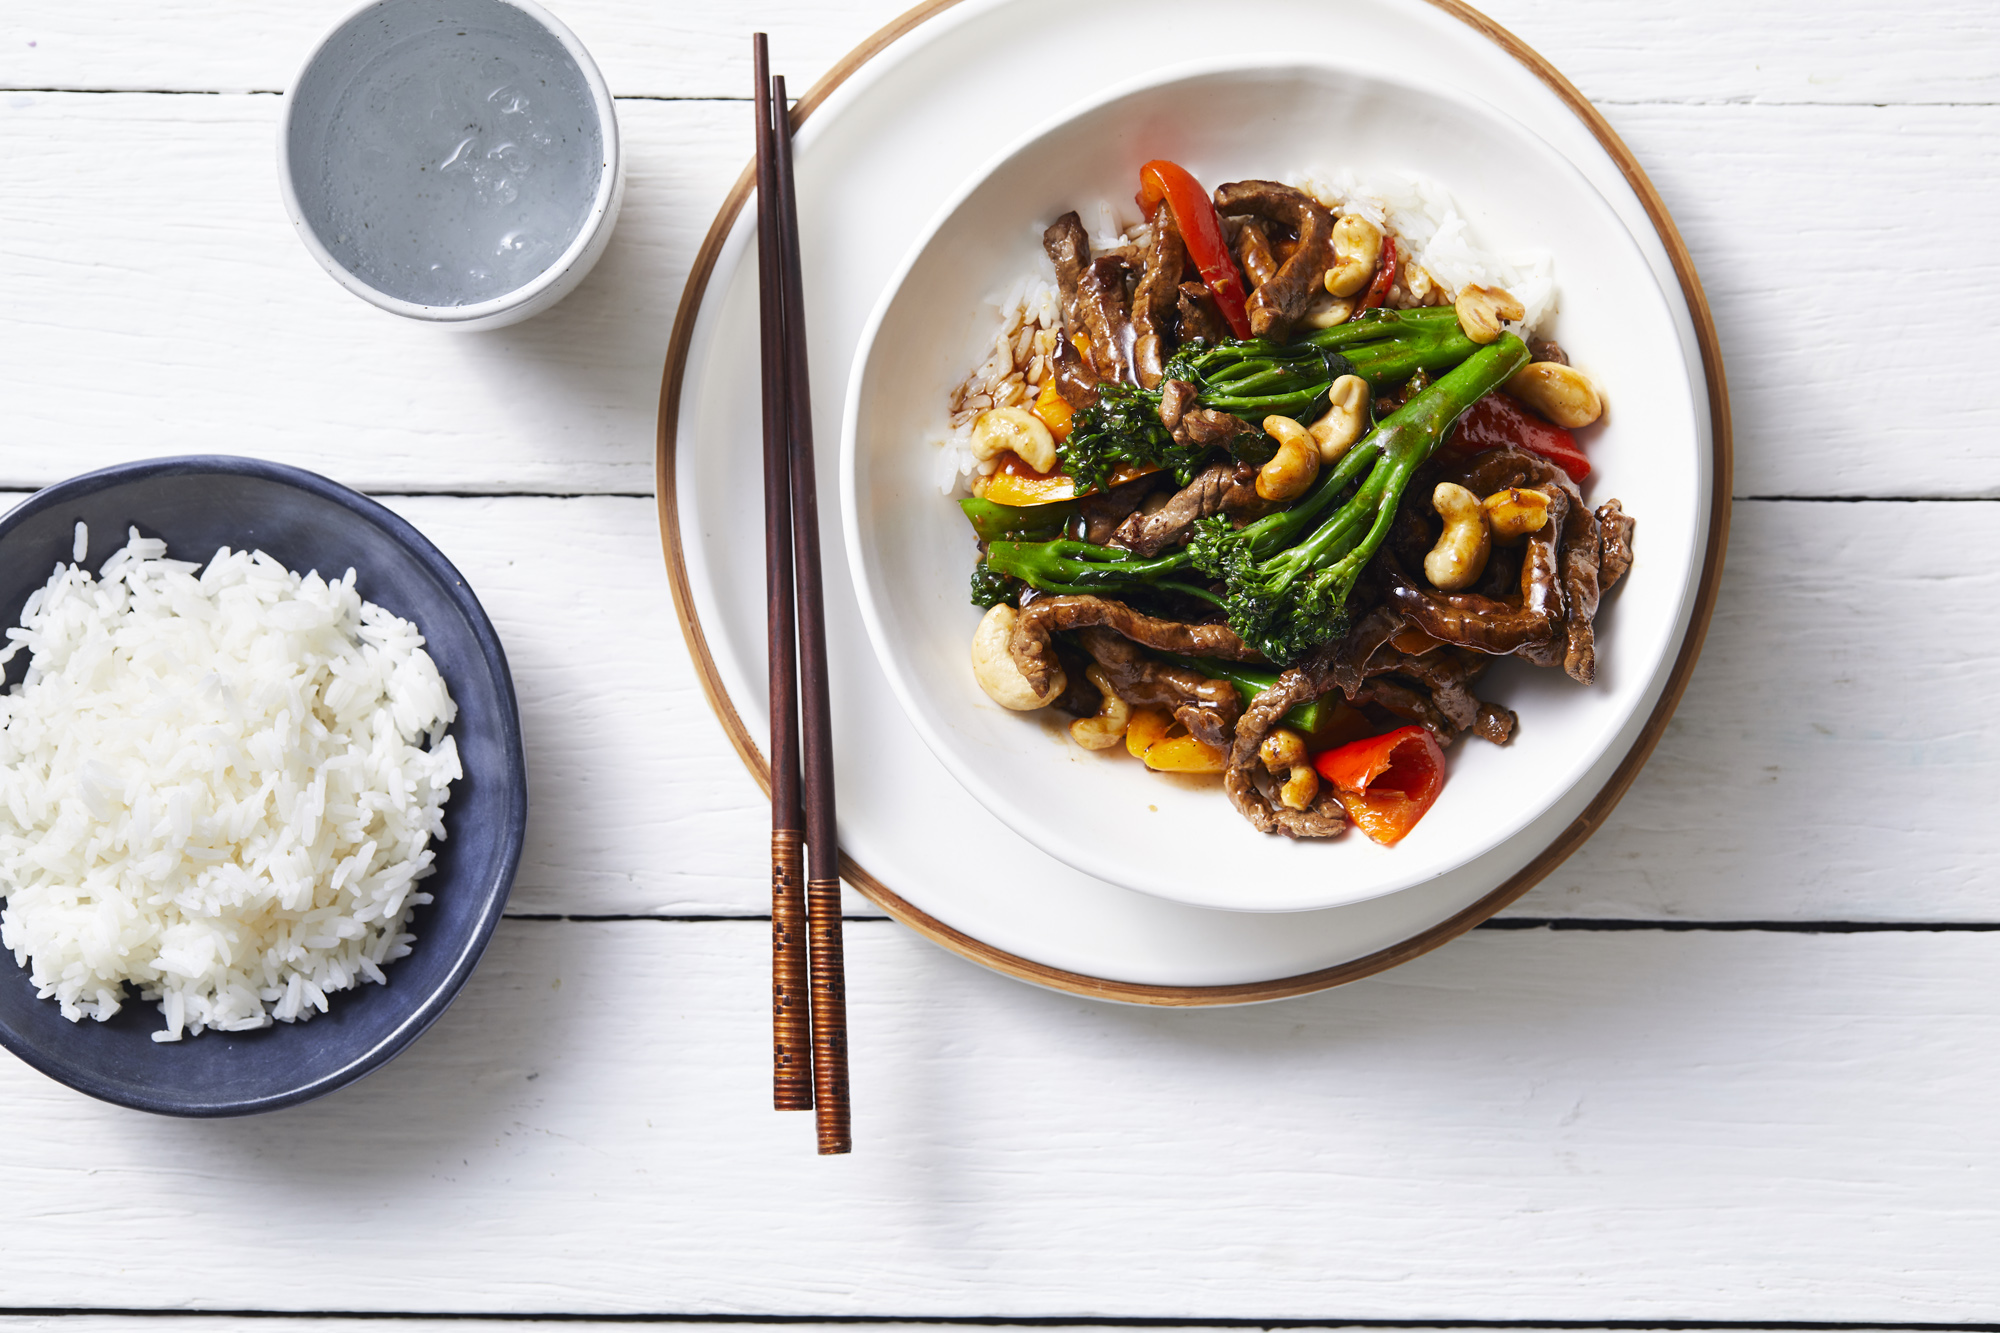 Recipe_LR_Broccolini with Teriyaki Beef_Janelle Bloom_2019_2-1